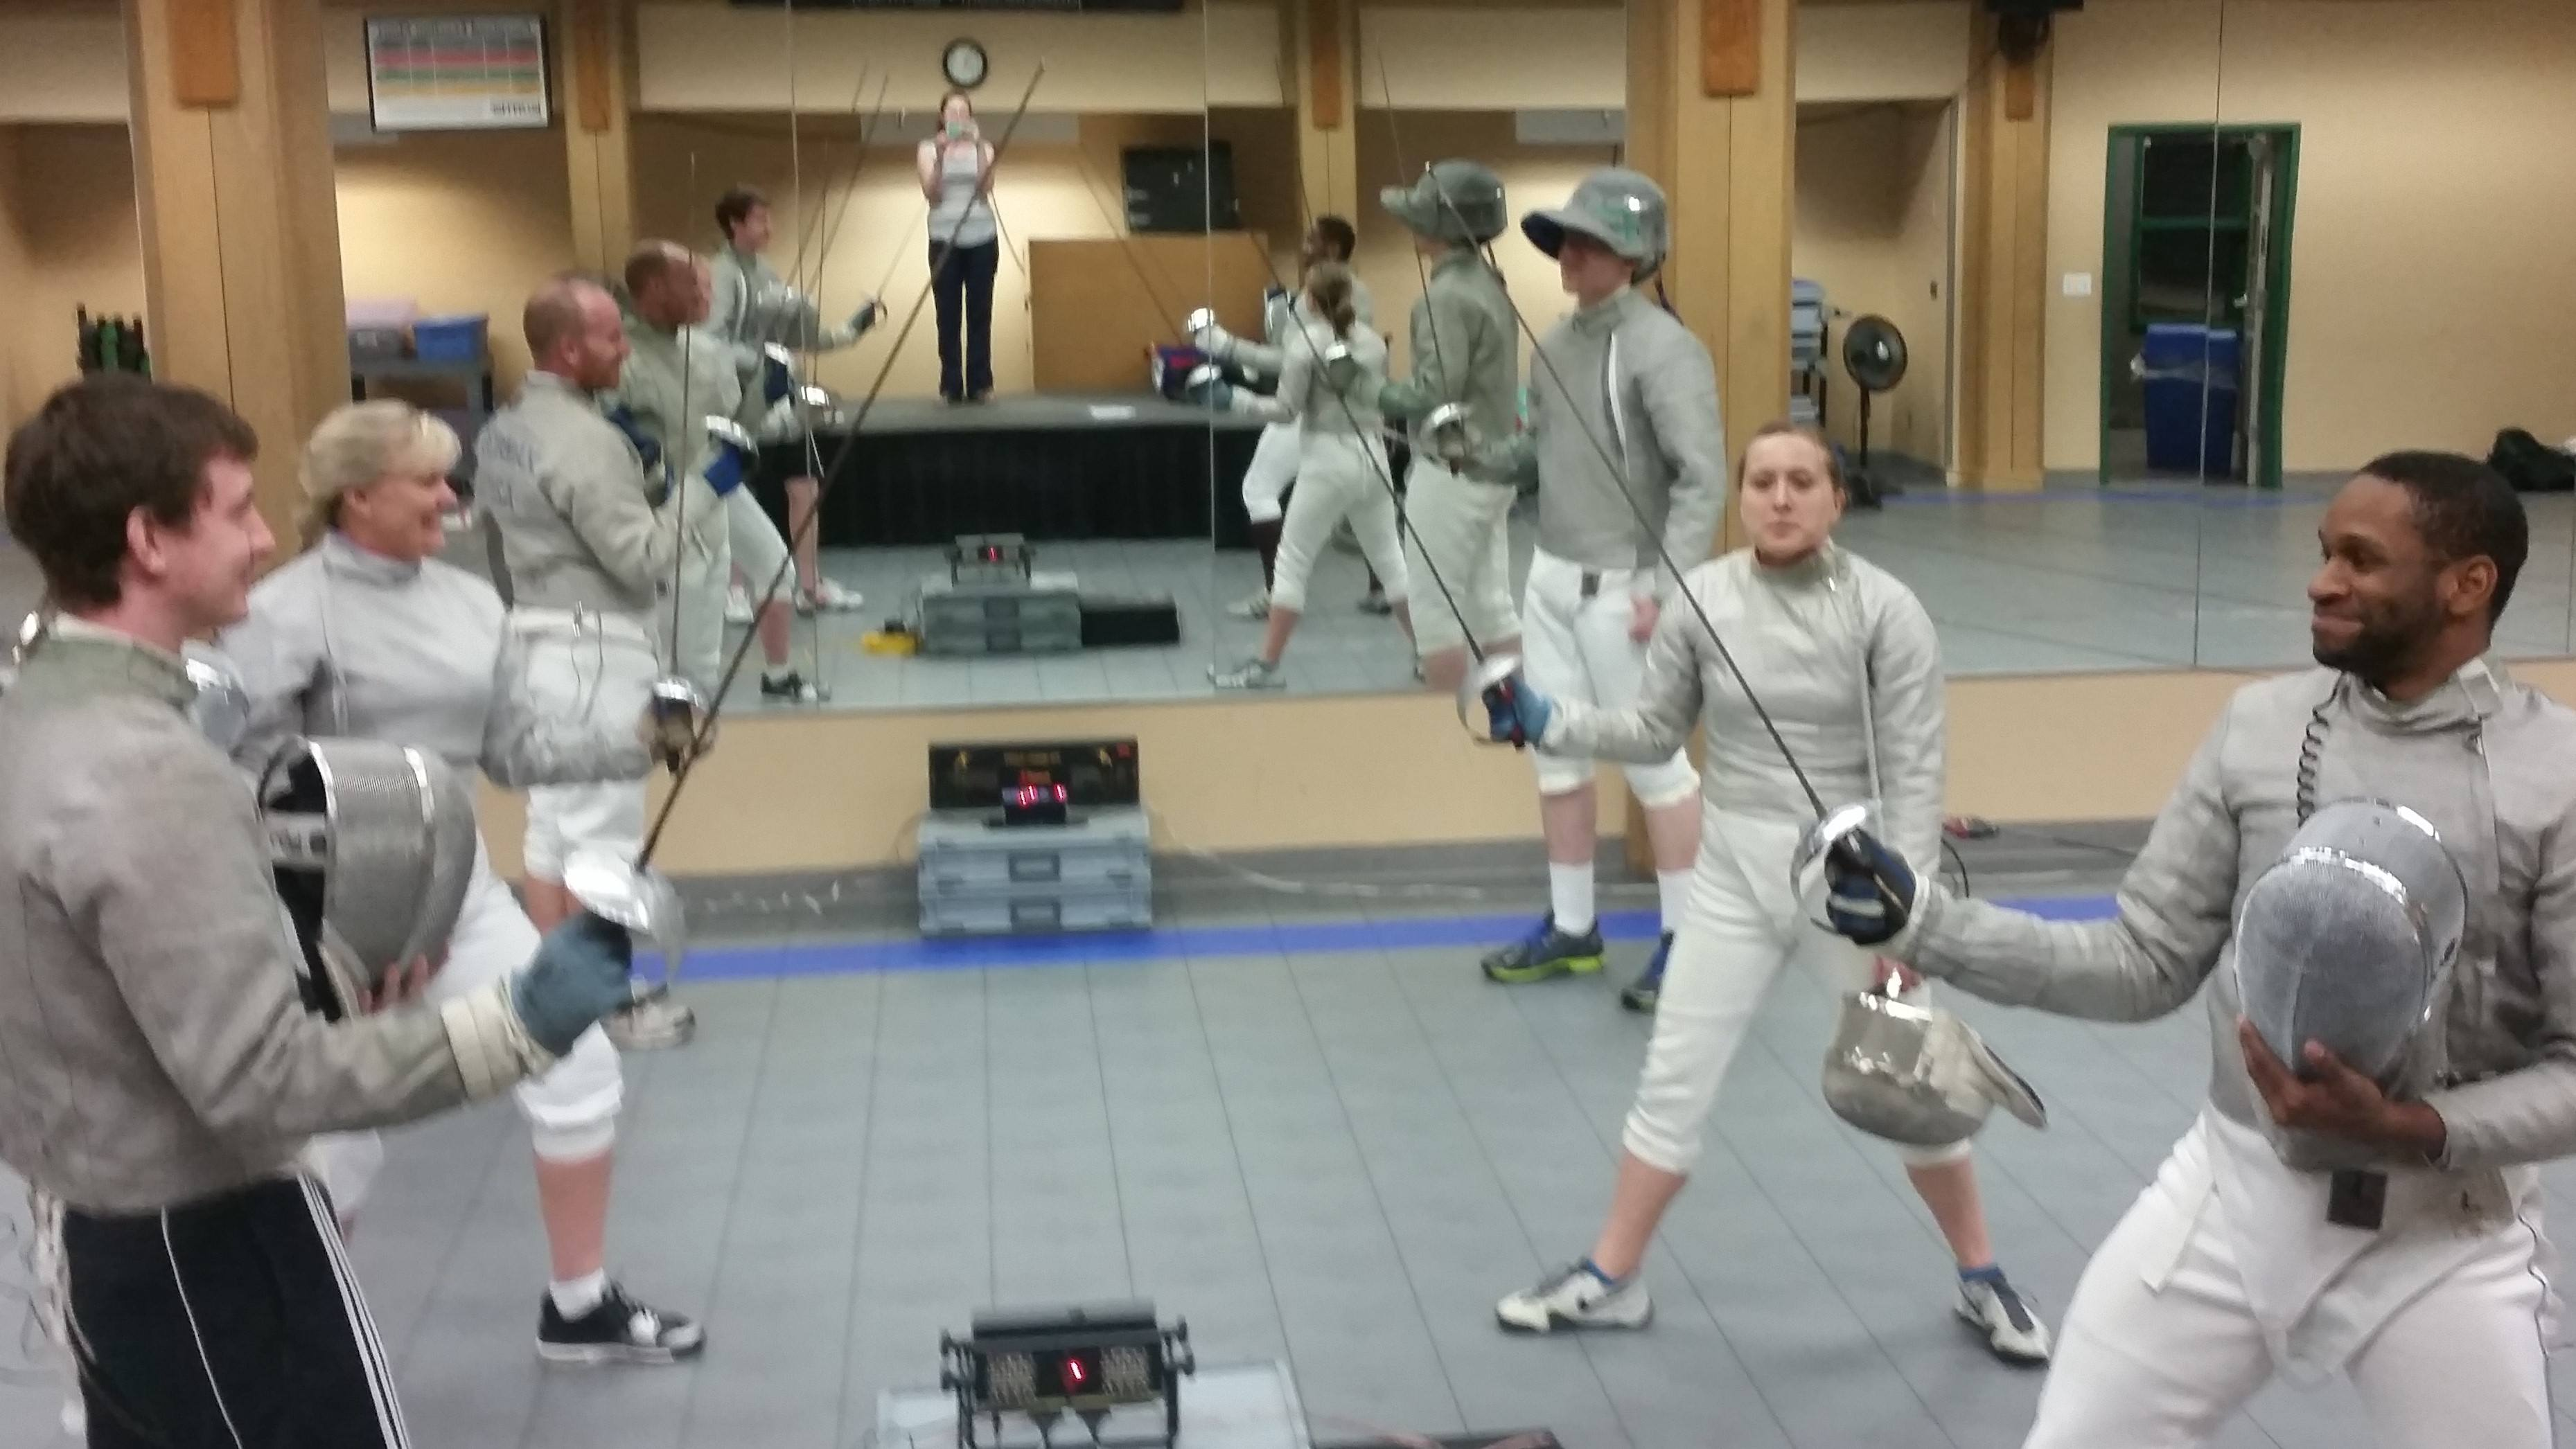 fencing classes Archives | Page 2 of 2 | Houston Sword Sports